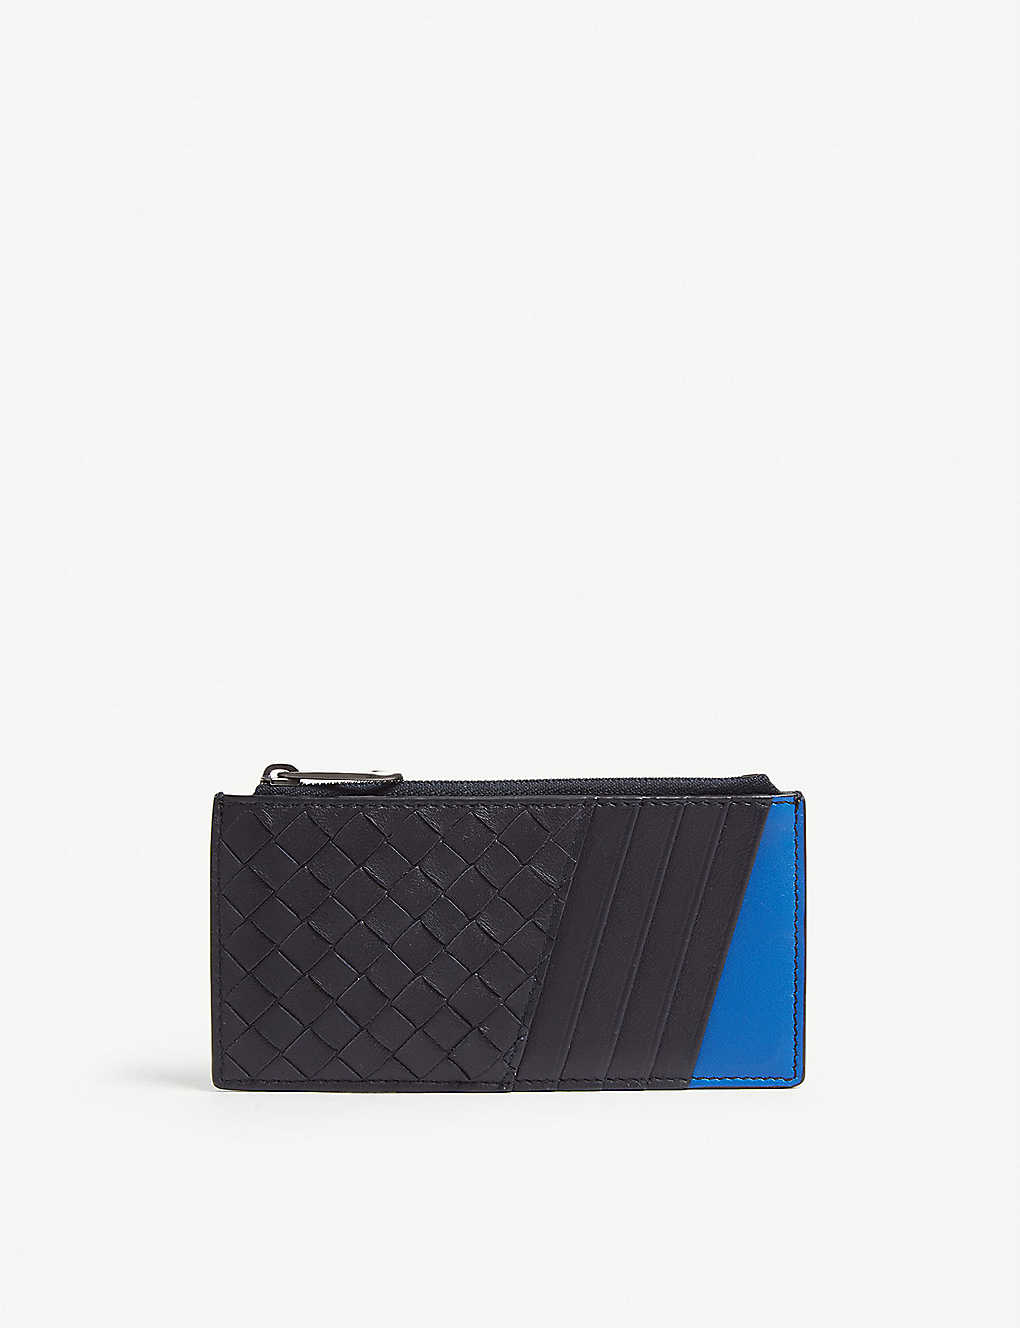 74cea2a174387 Intrecciato woven leather purse and card holder - Tourmalineprimary blue ...